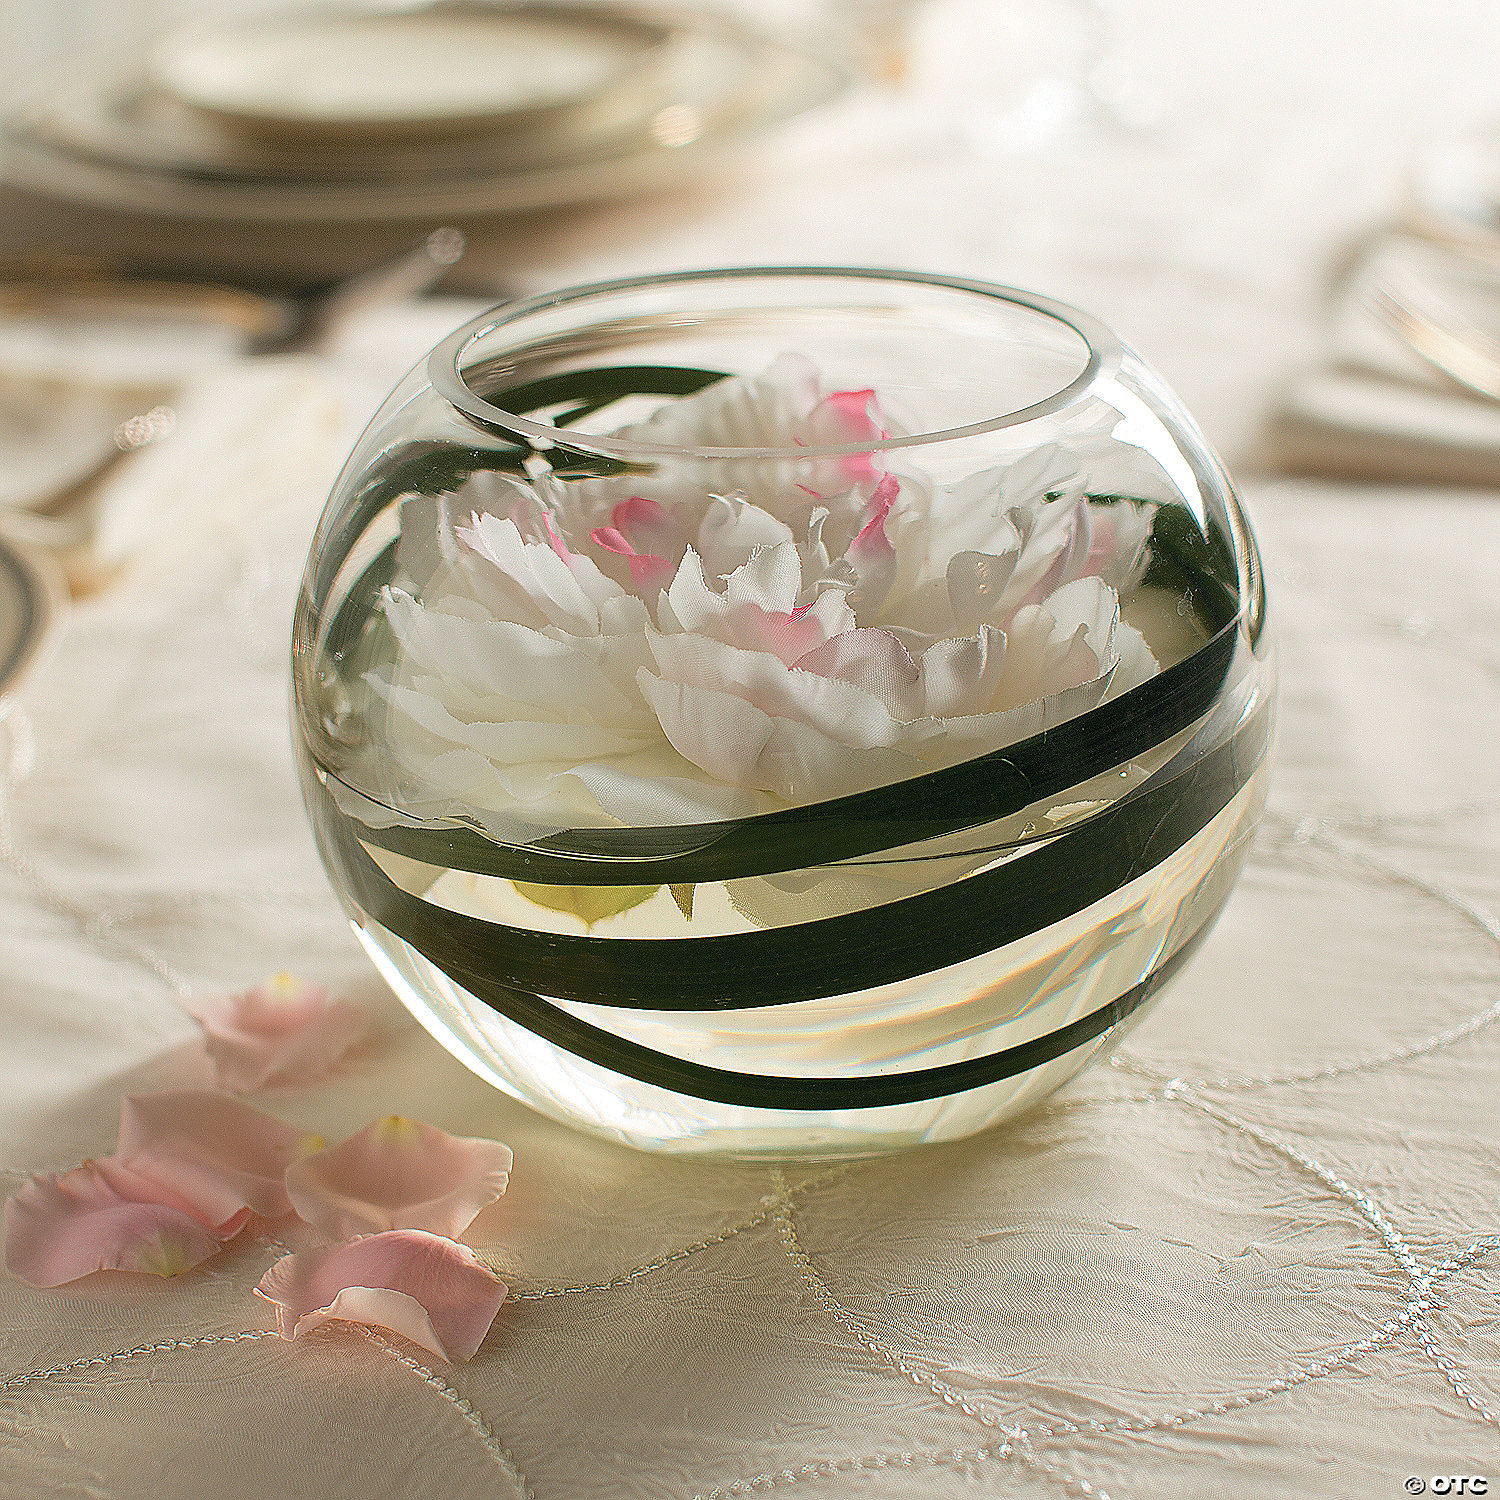 walled cylinder rdquo inch containers of part thick round centerpieces vase itm glass set decor res vases